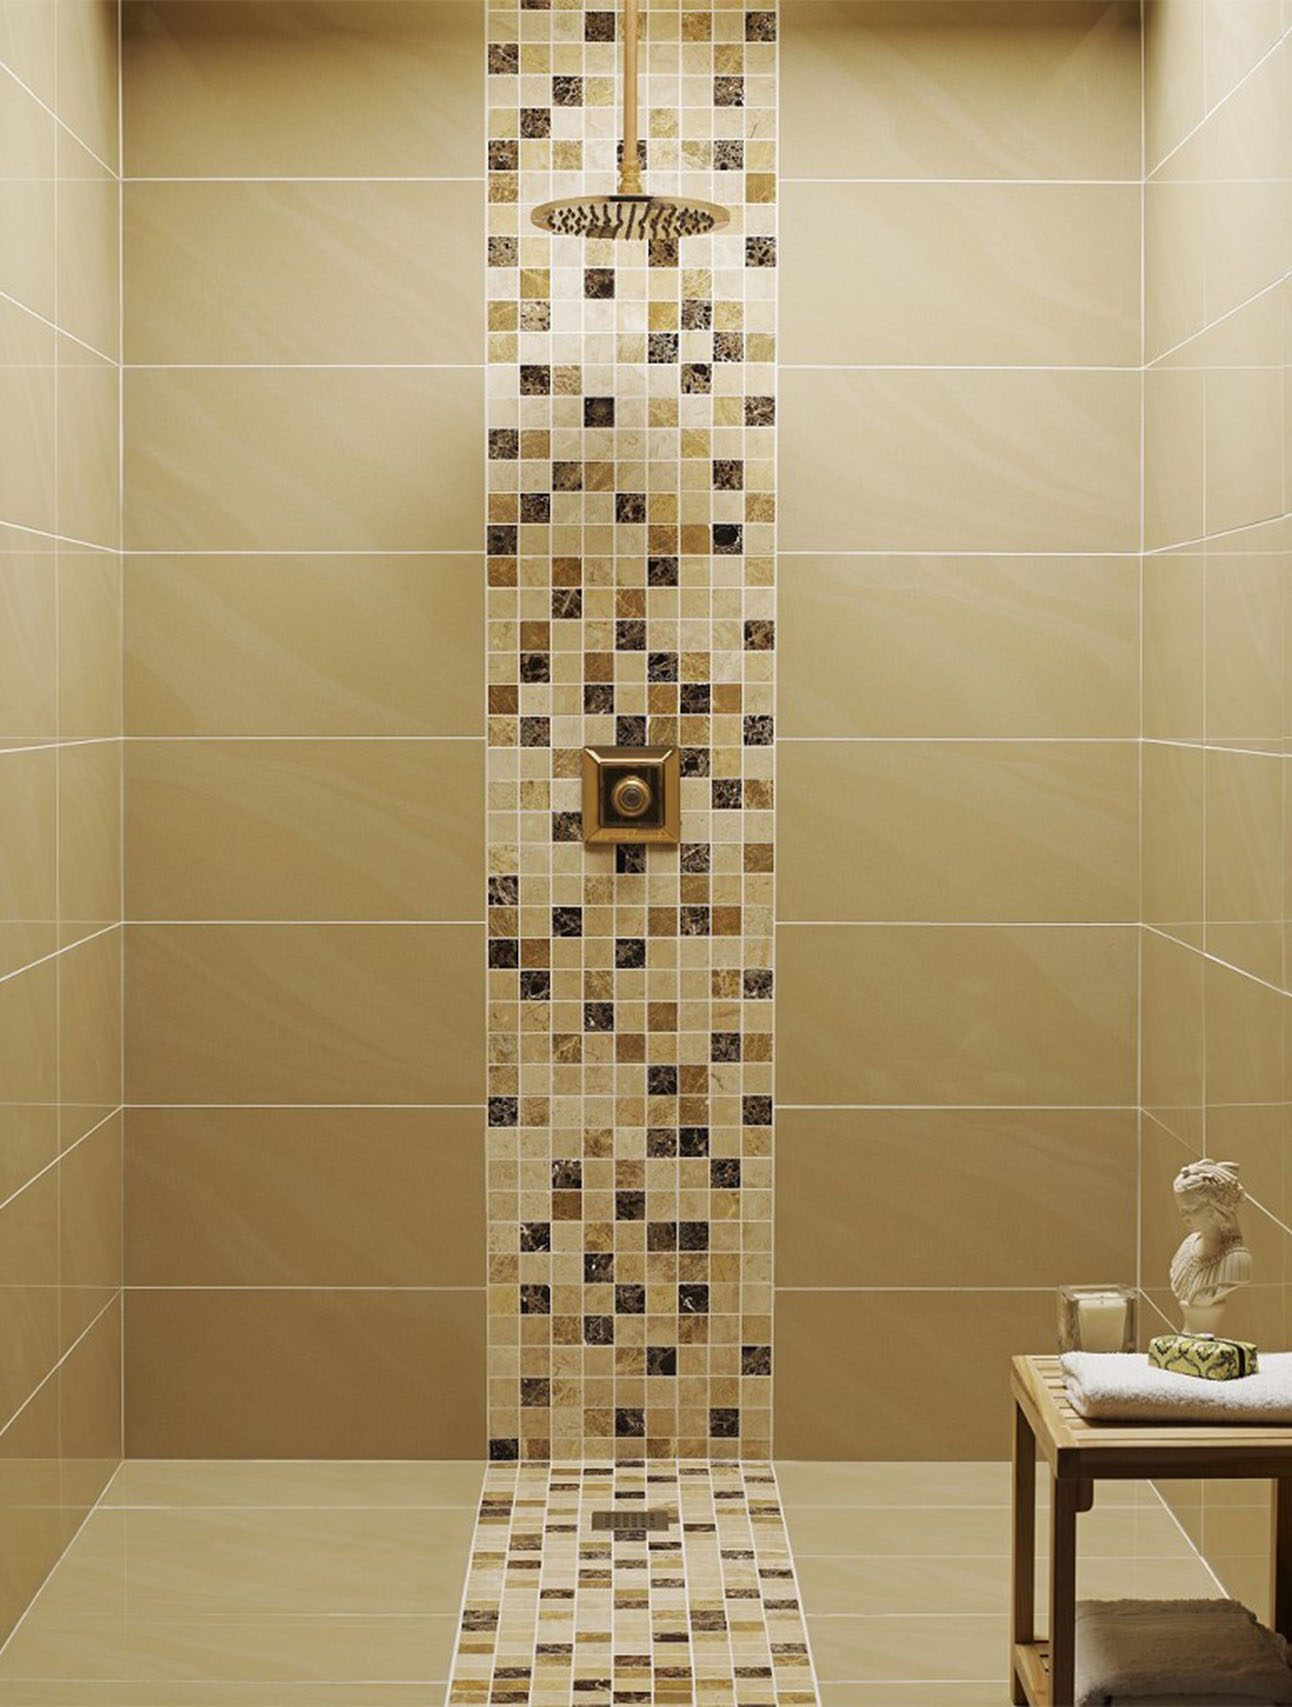 30 Shower Tile Ideas On A Budget 2019